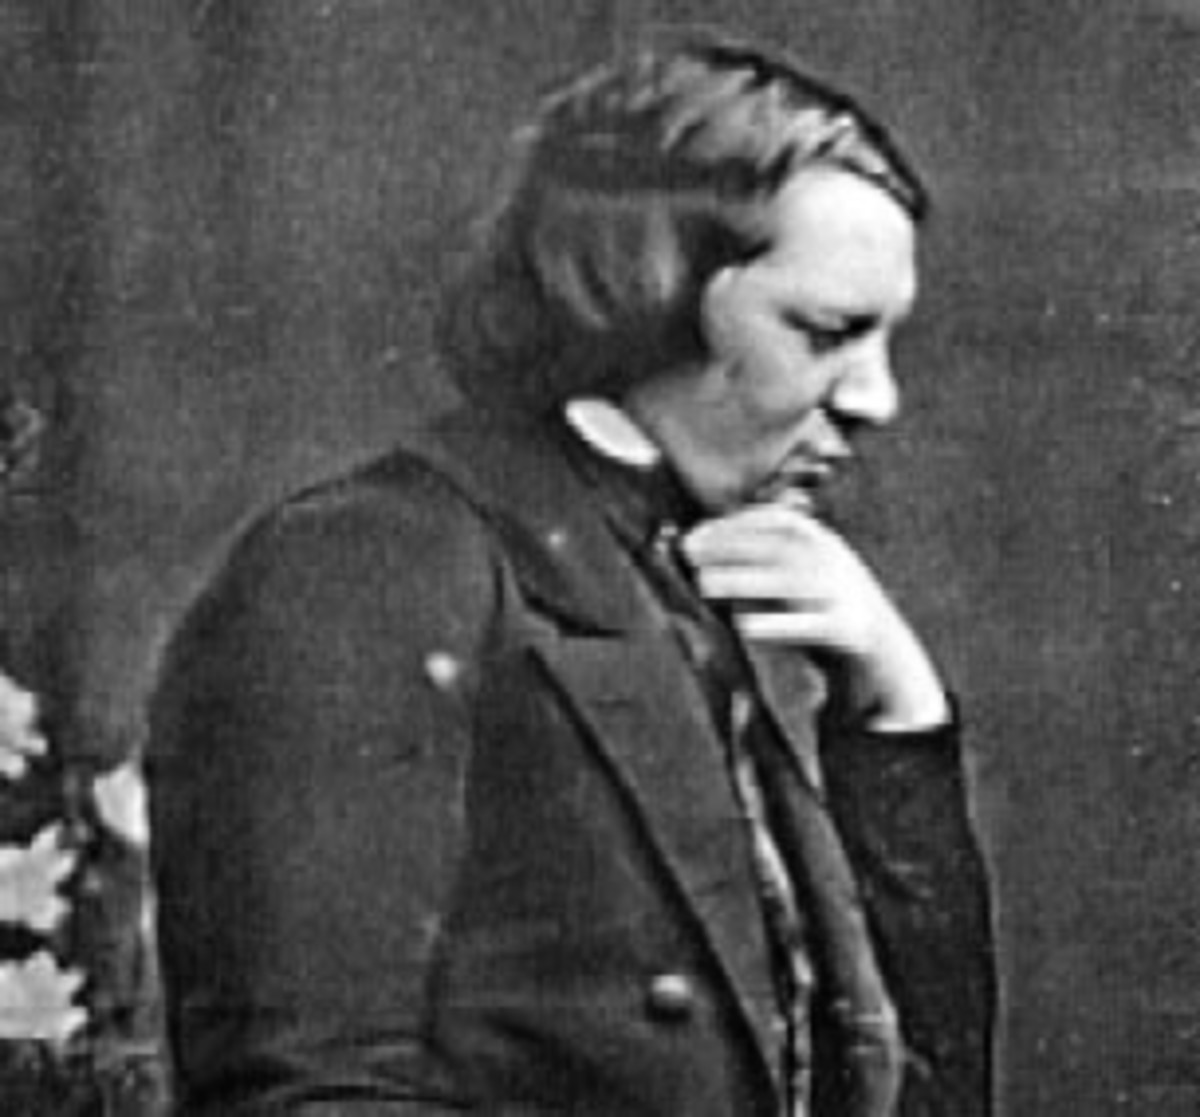 Daguerrotype of Schumann c1850.